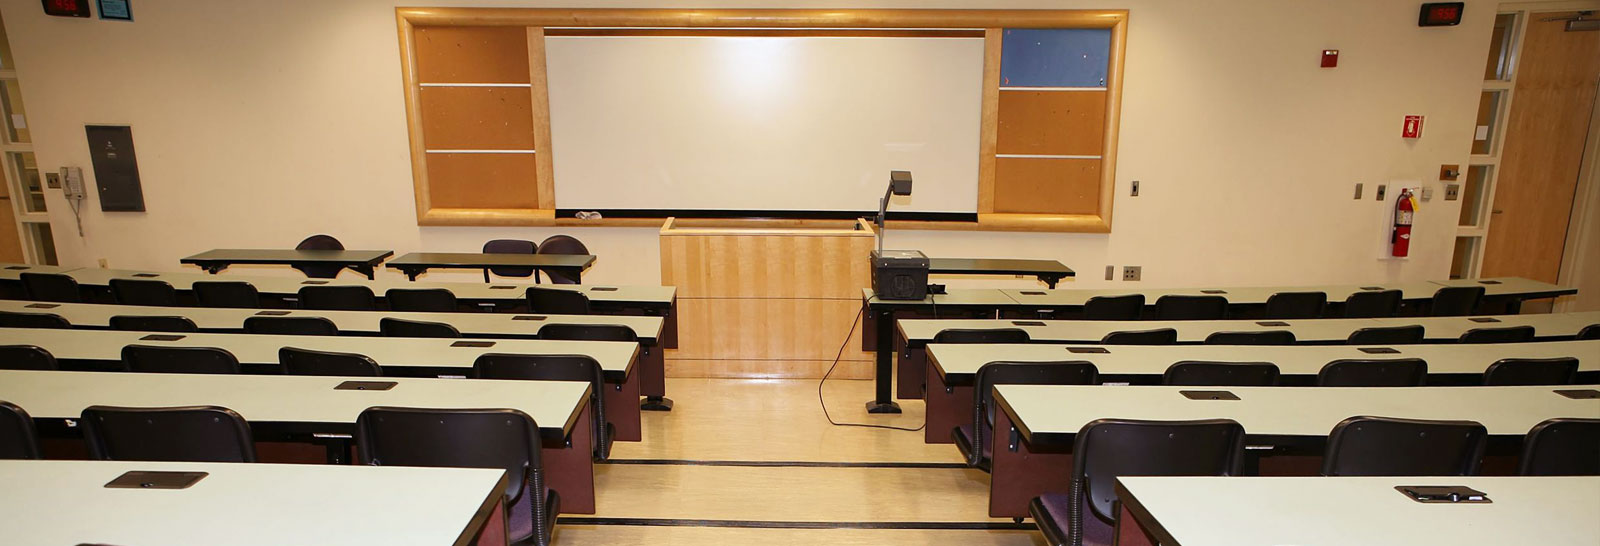 EDUCATIONAL FACILITY CLEANING